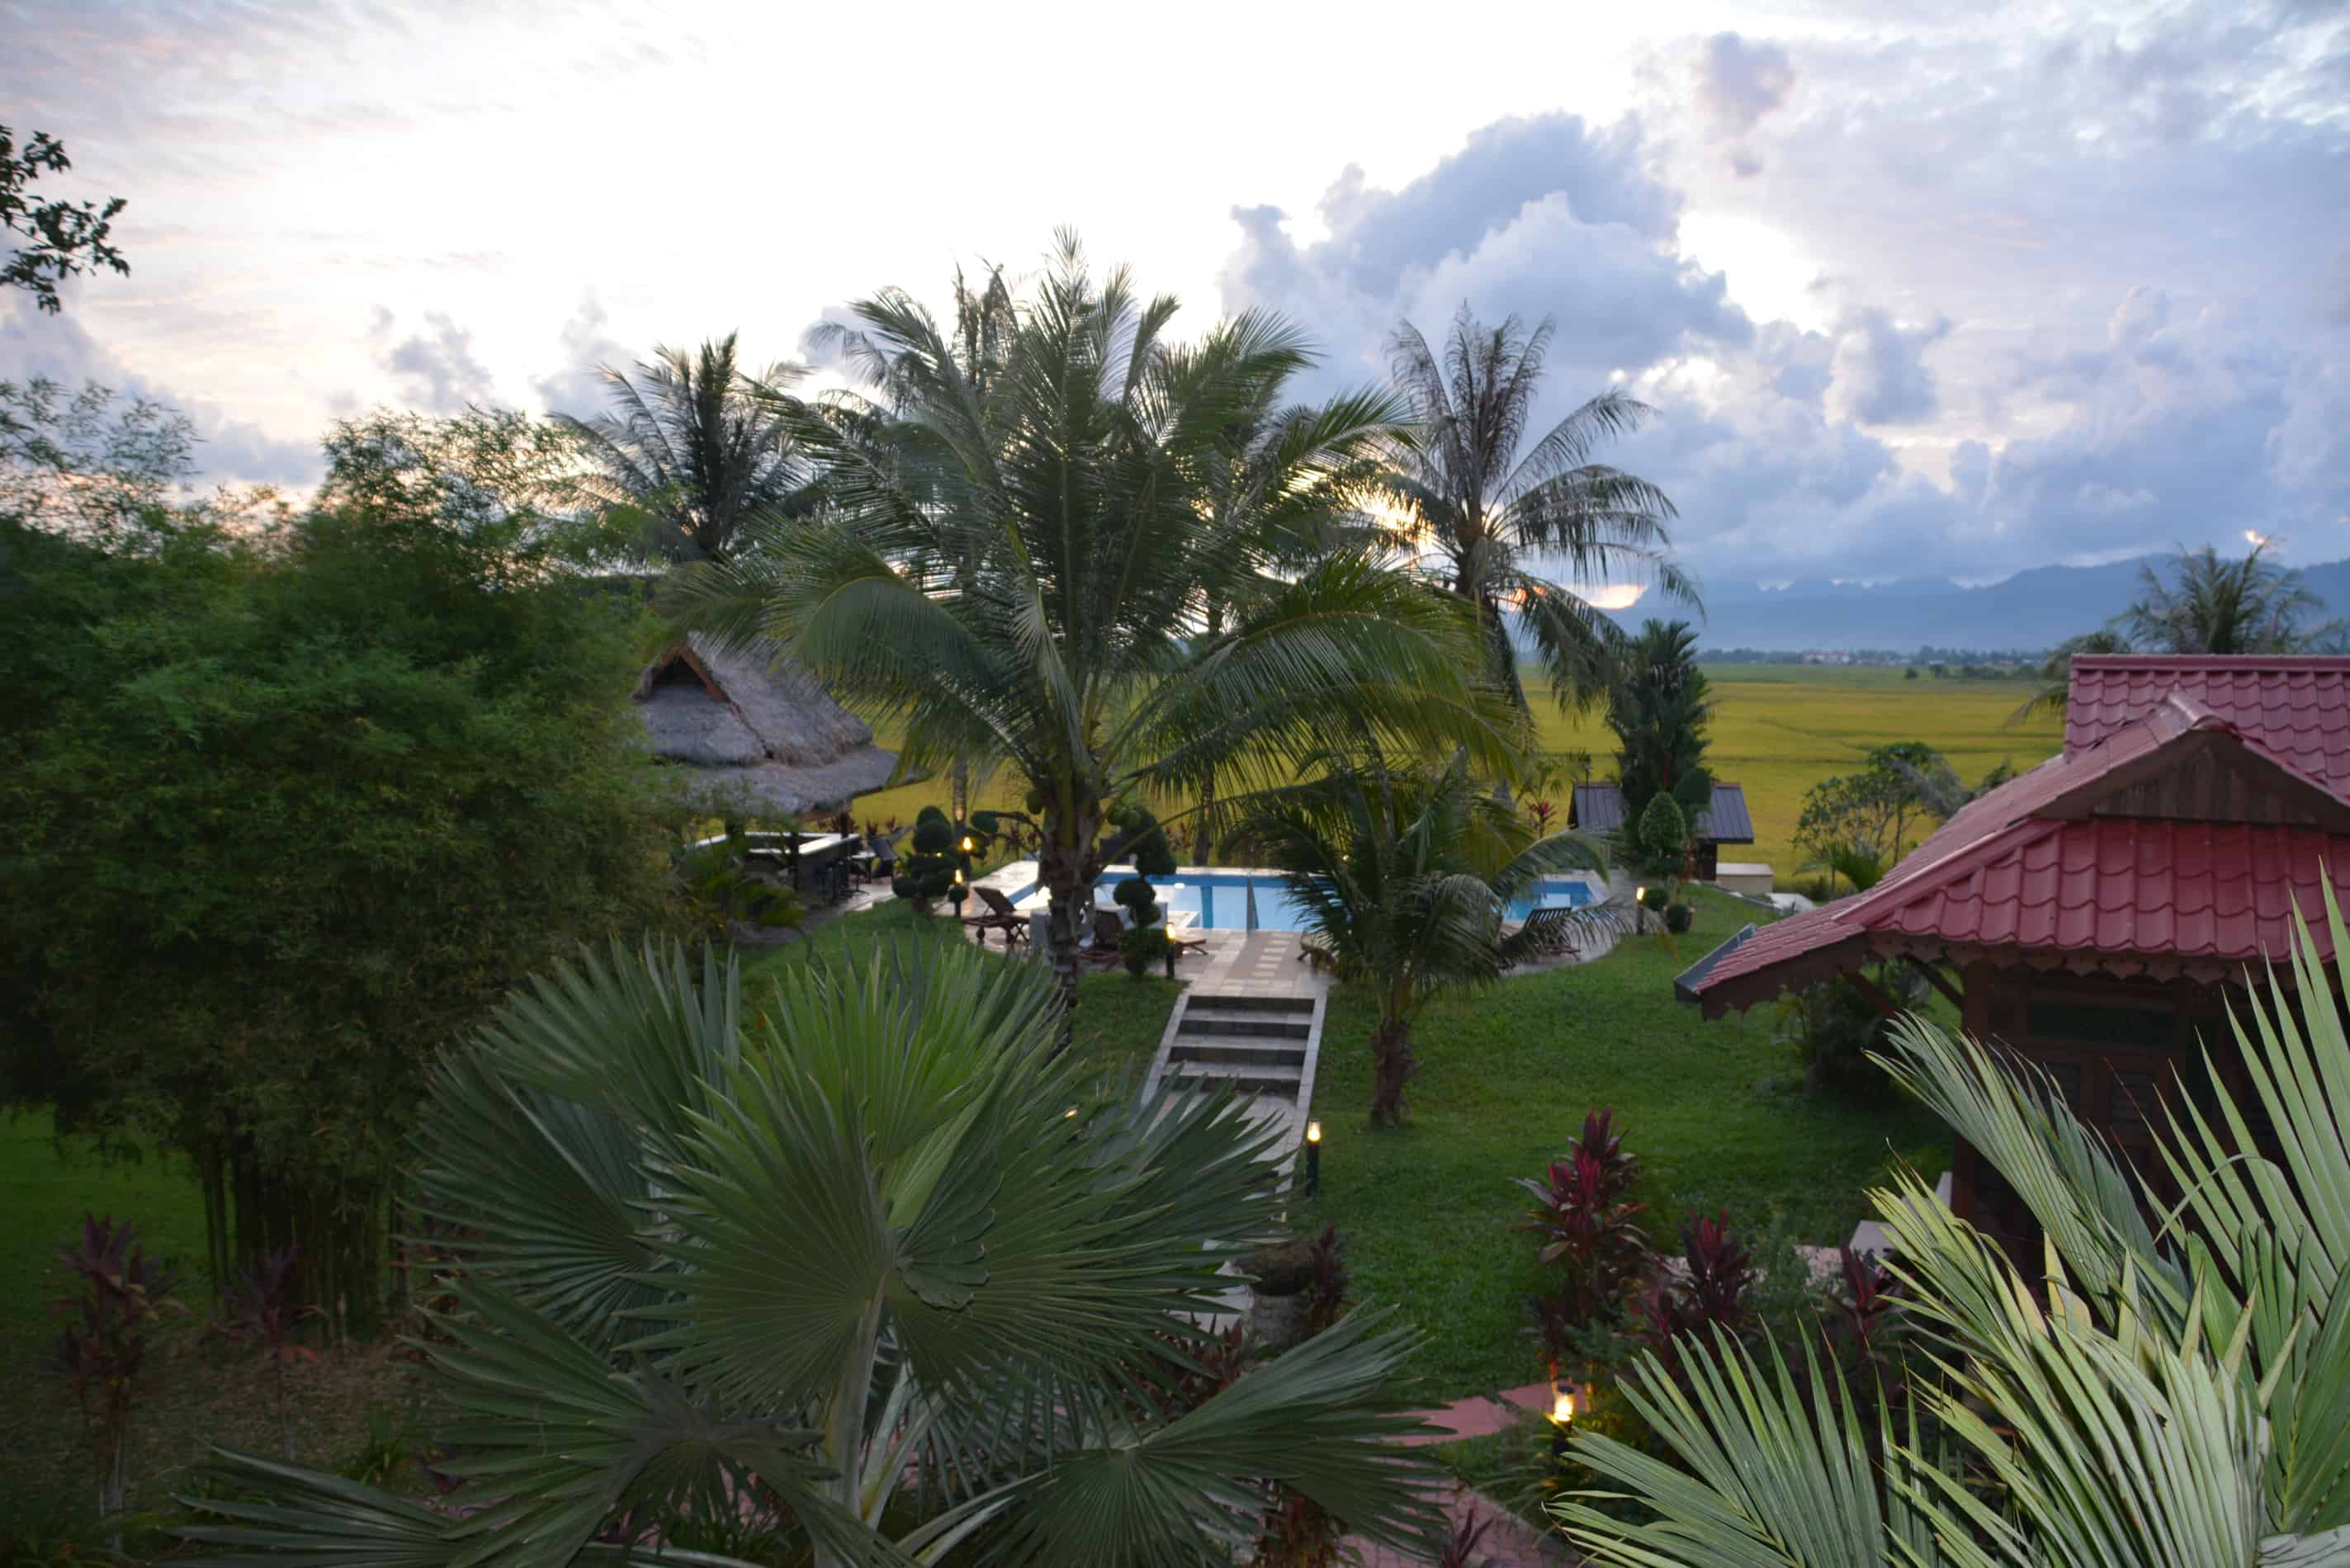 Sunset Valley Holiday Houses - Rice paddy view